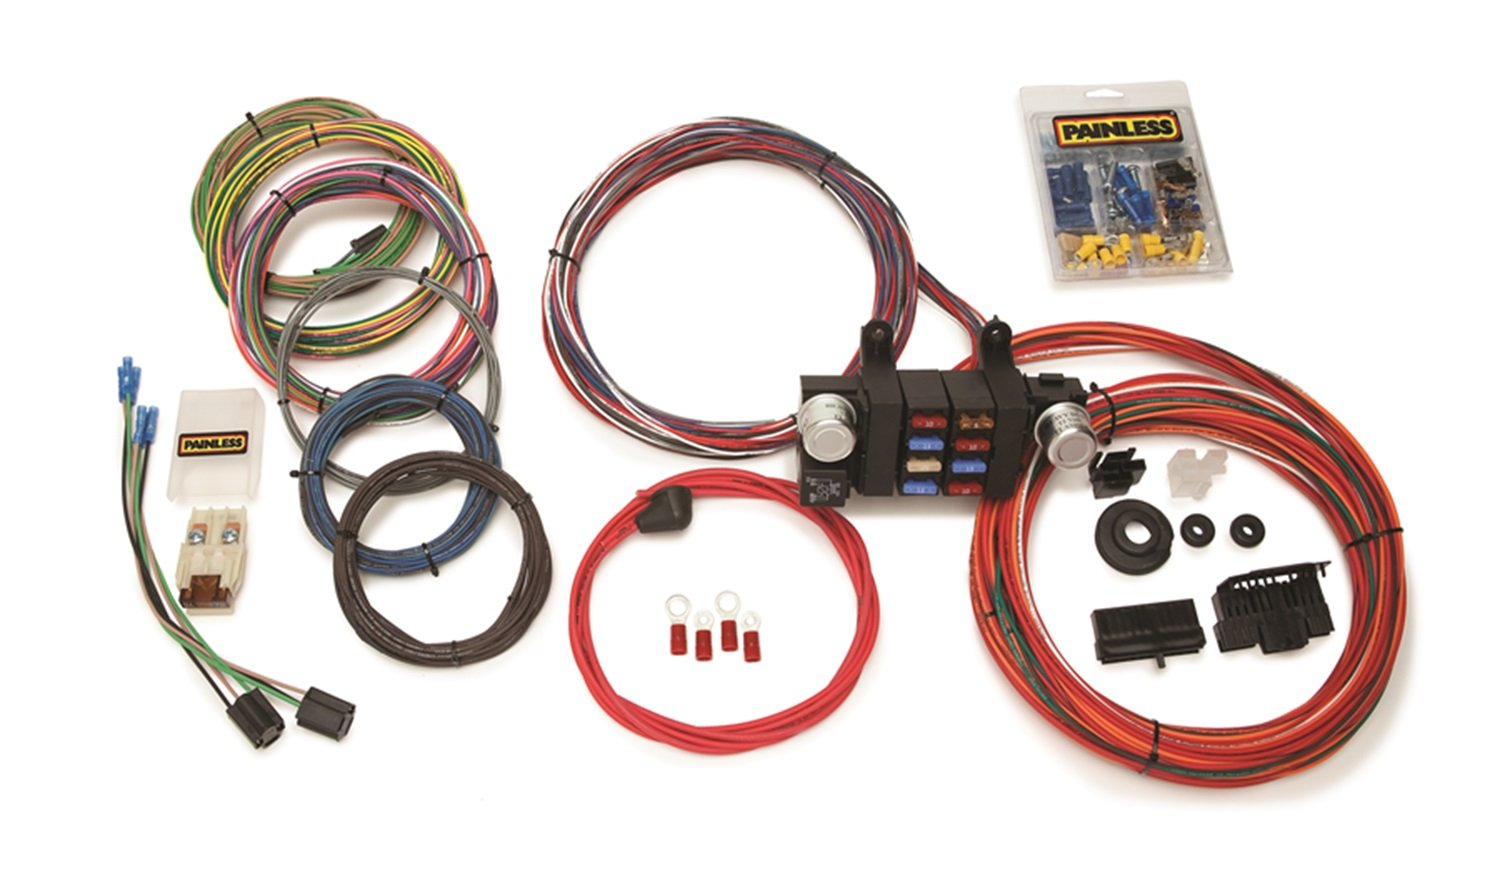 714FypRjpJL._SL1500_ amazon com painless wiring 10308 8 circuit mod t bucket h Painless Wiring Harness Chevy at fashall.co